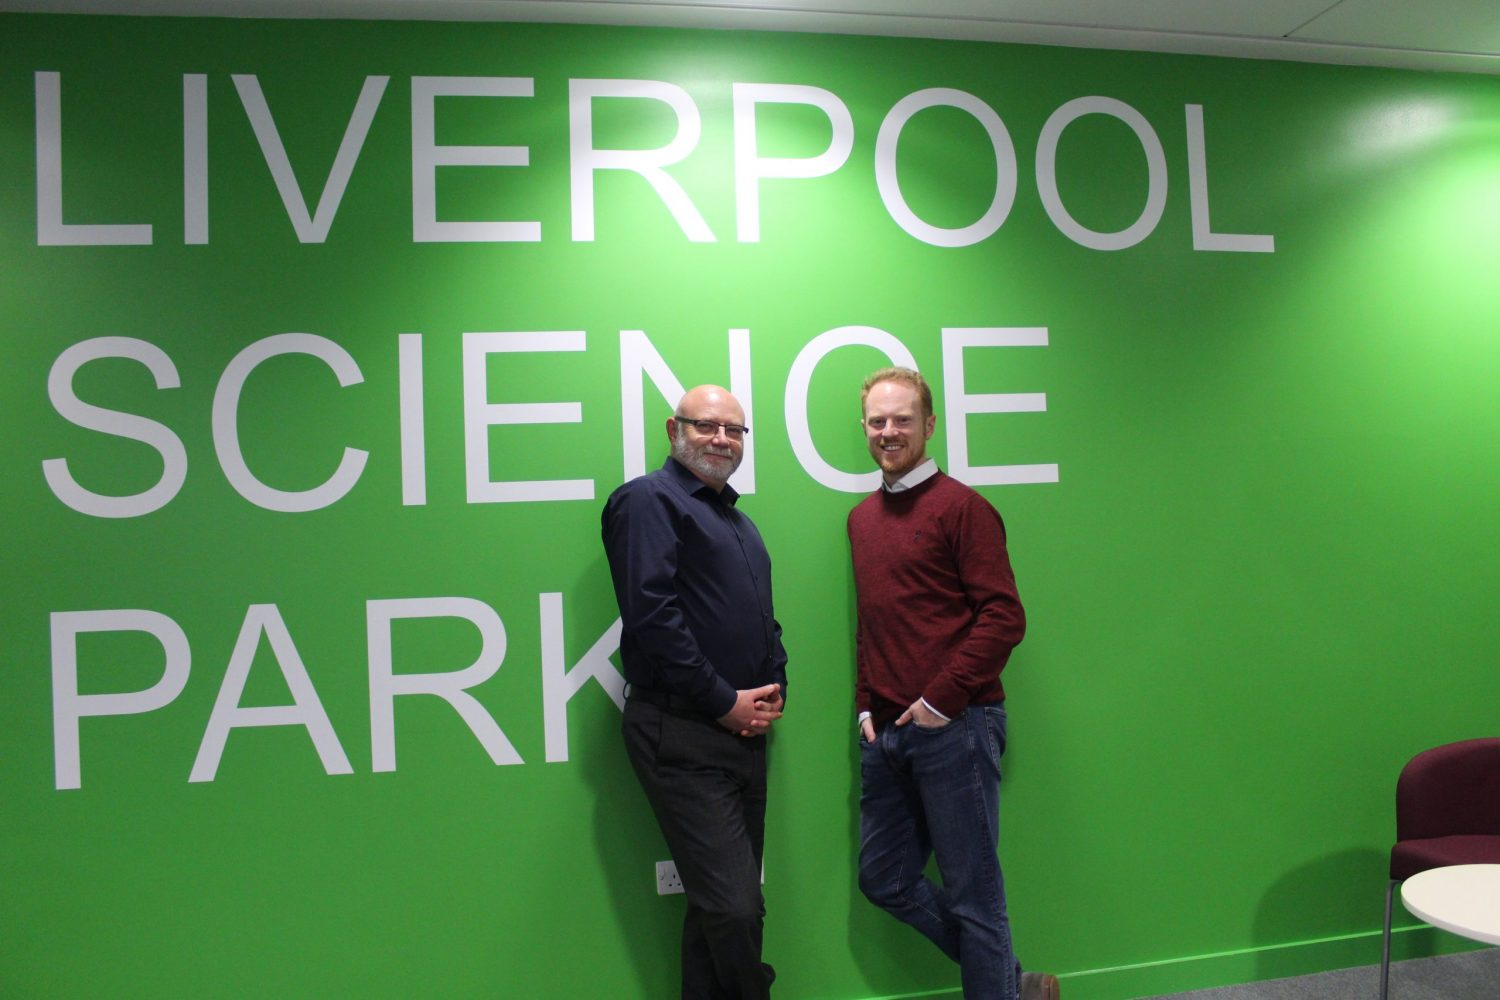 Two men standing in front of a green wall with white writing stating Liverpool Science Park. Man to the left has glasses andis wearing a dark blue suit and man to the right is wearing a maroon jumper and blue trousers.